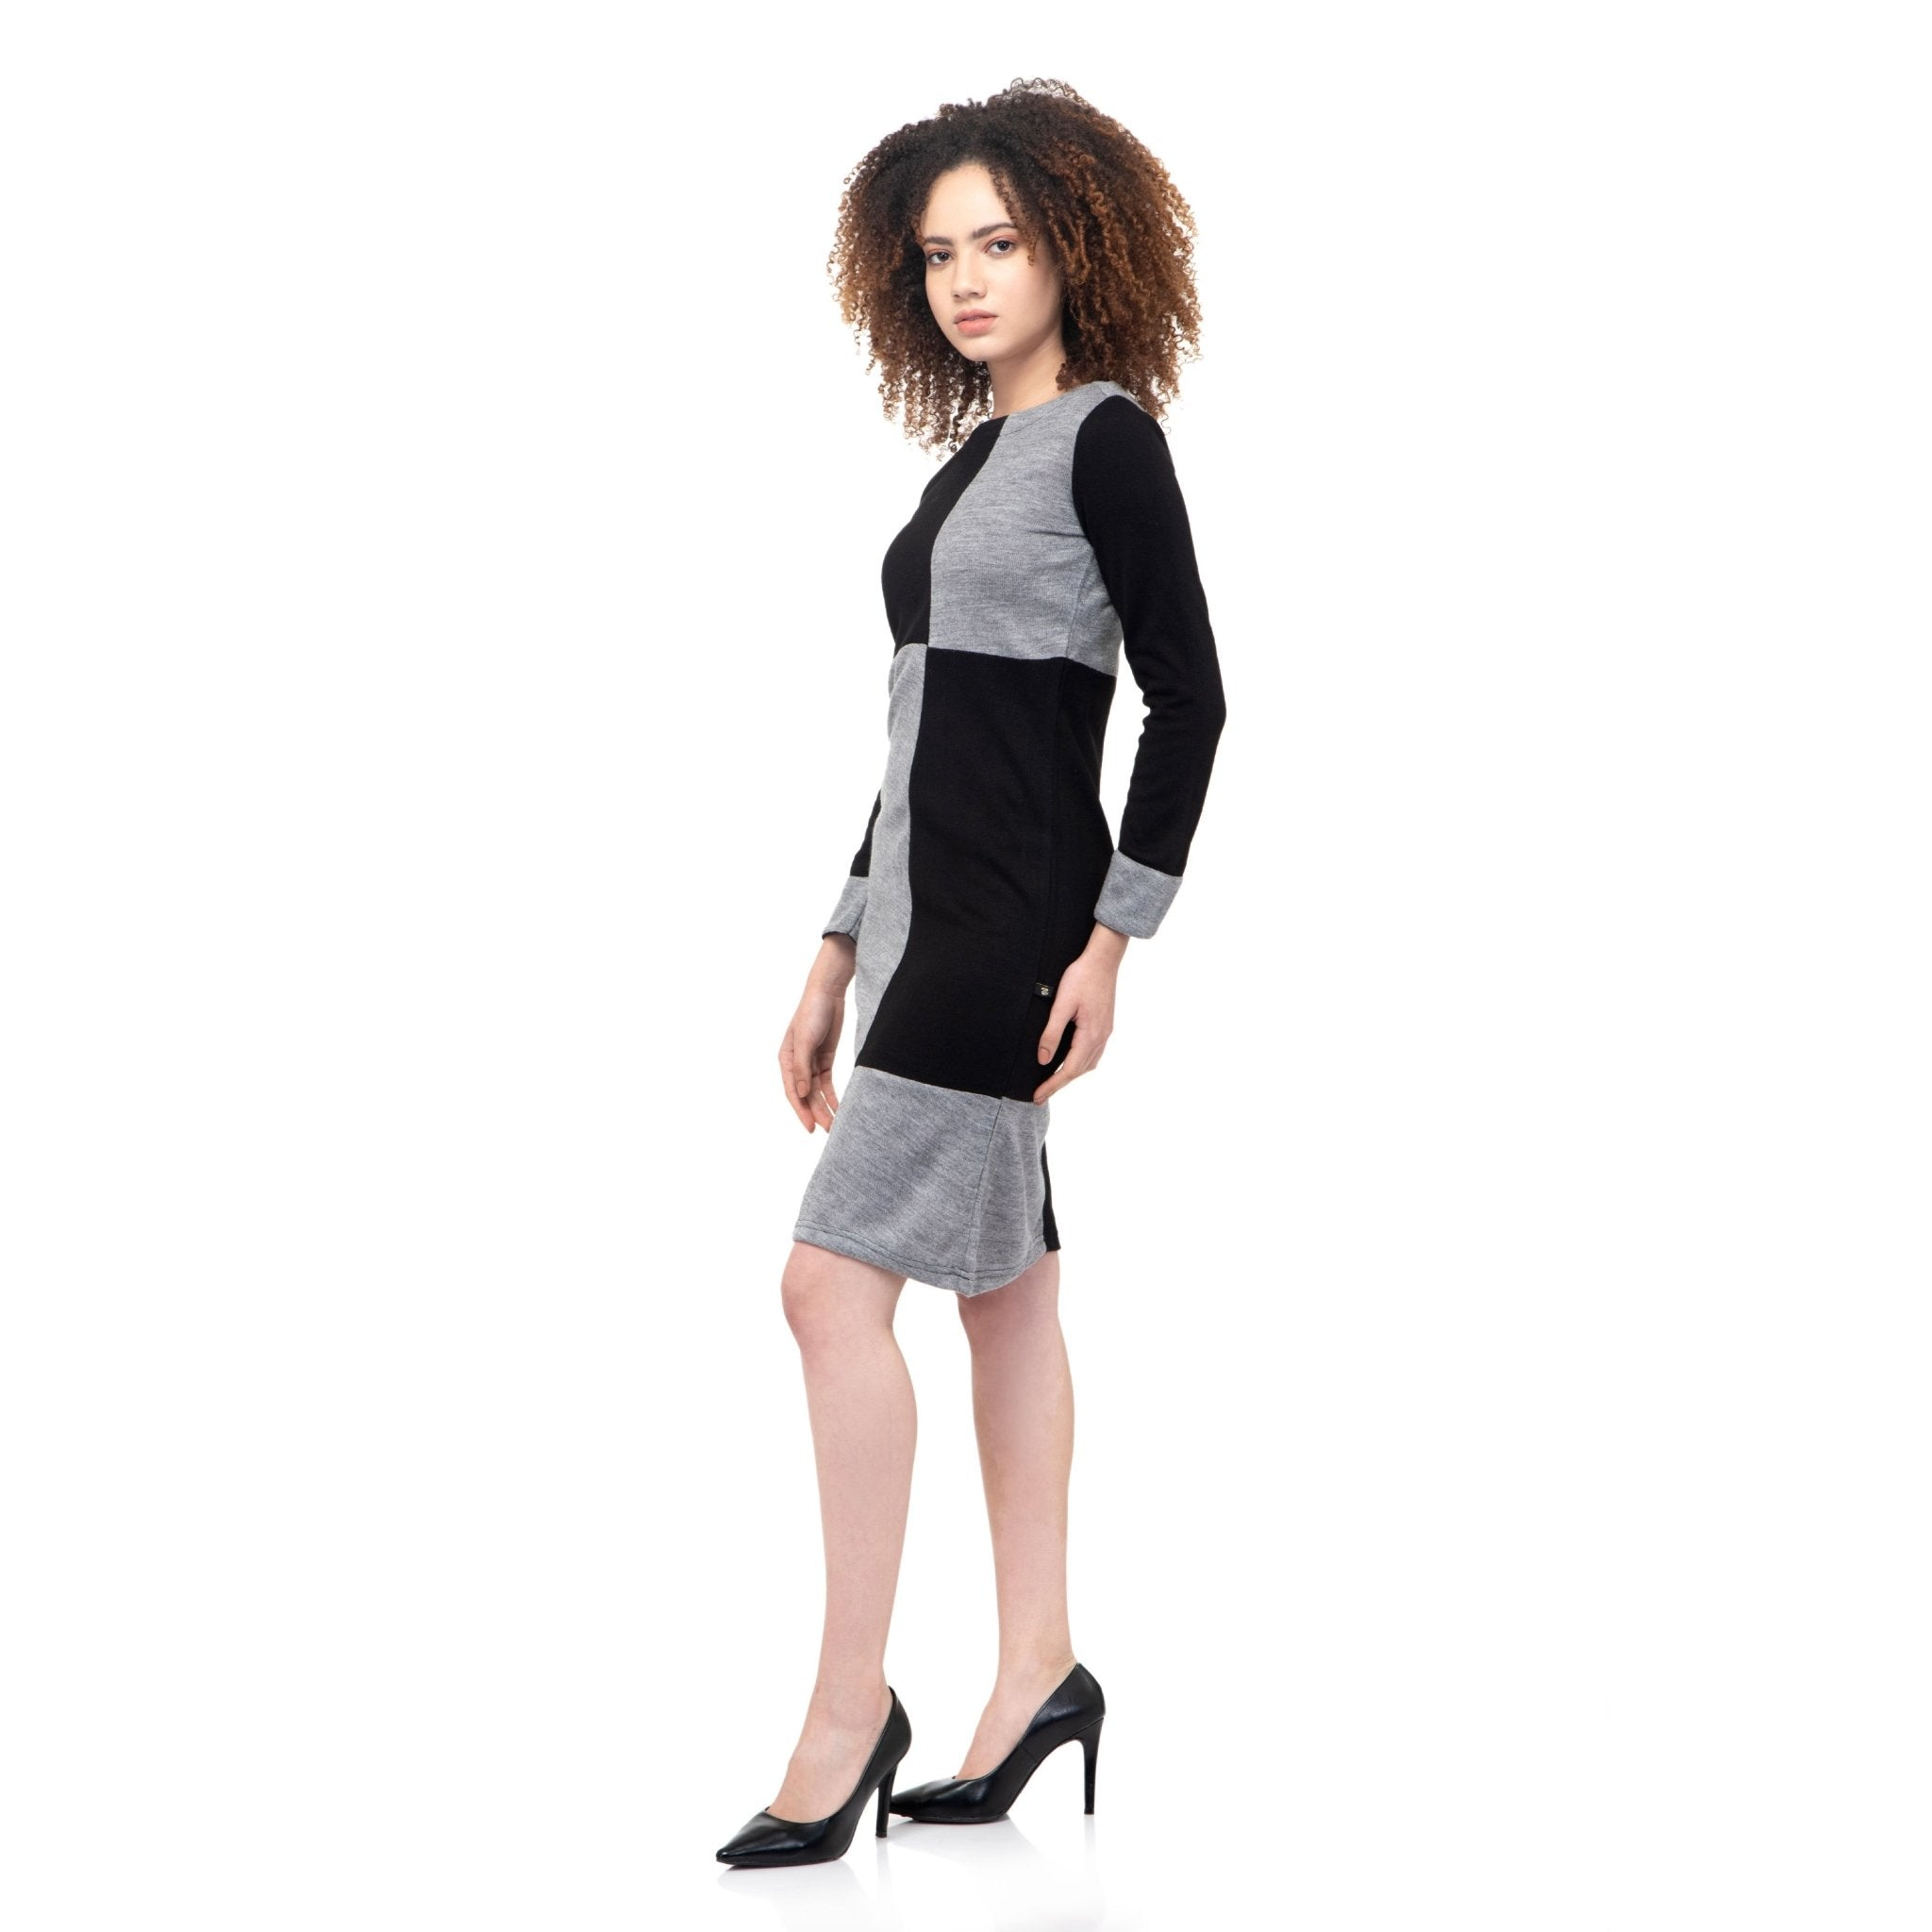 BLACK & GREY COLOR BLOCK WOOLEN DRESS - ZOMO